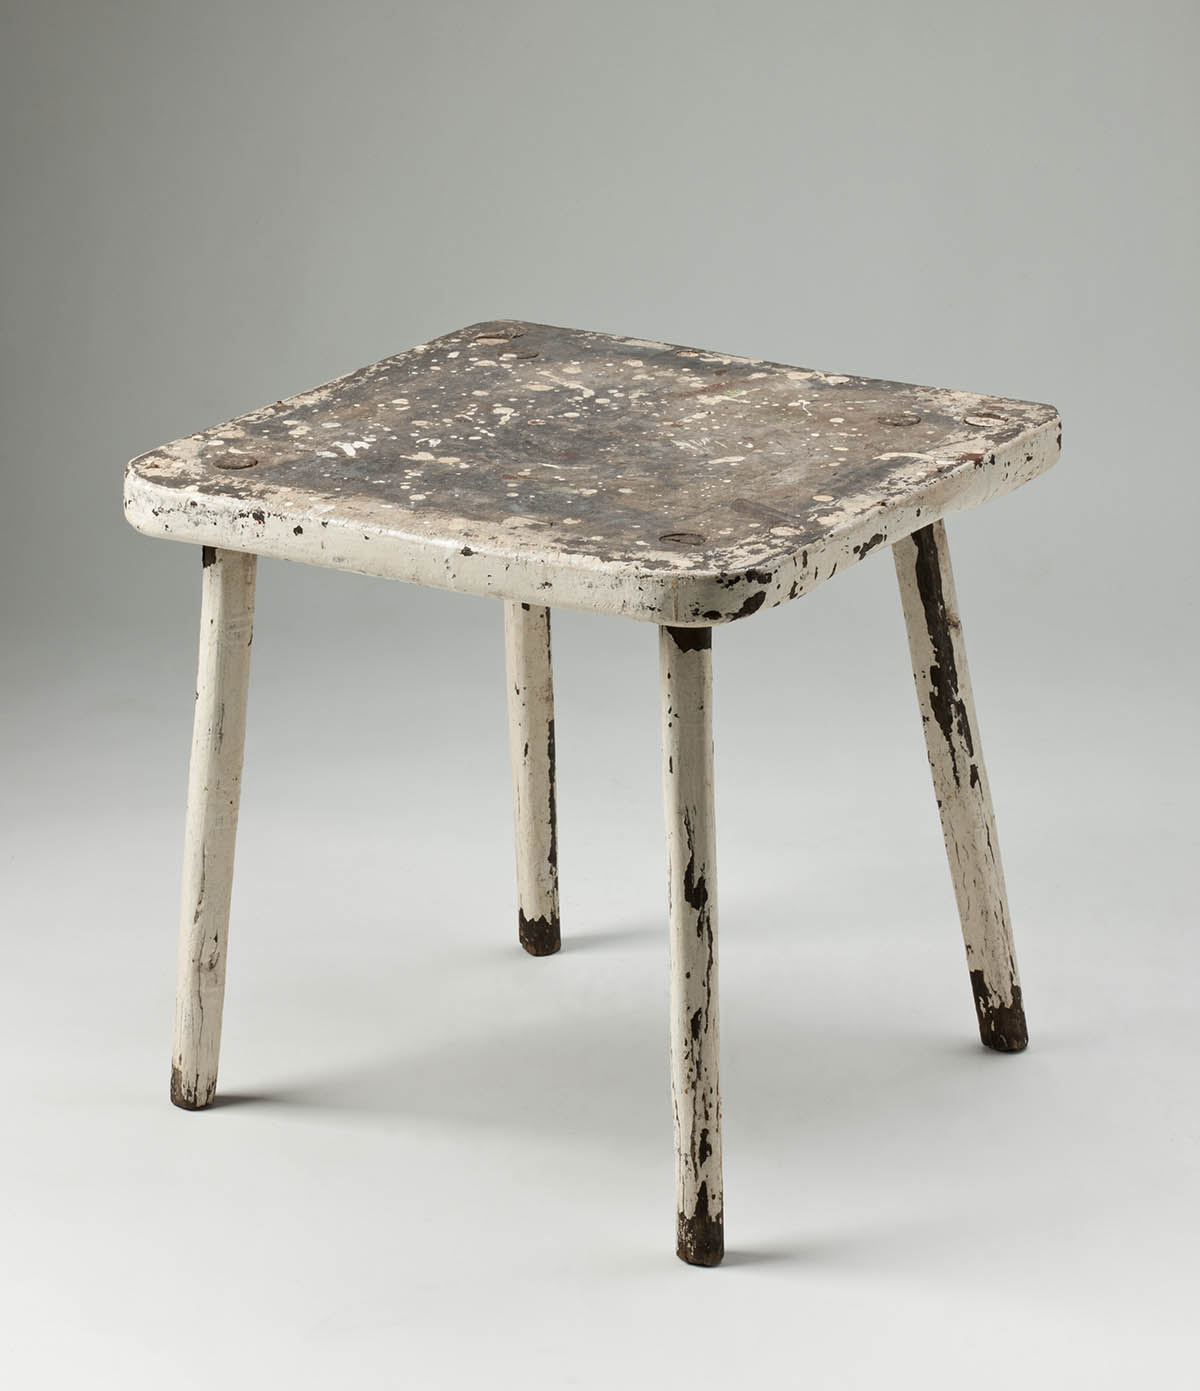 Wooden stool, painted cream, with four legs and a square seat. - click to view larger image